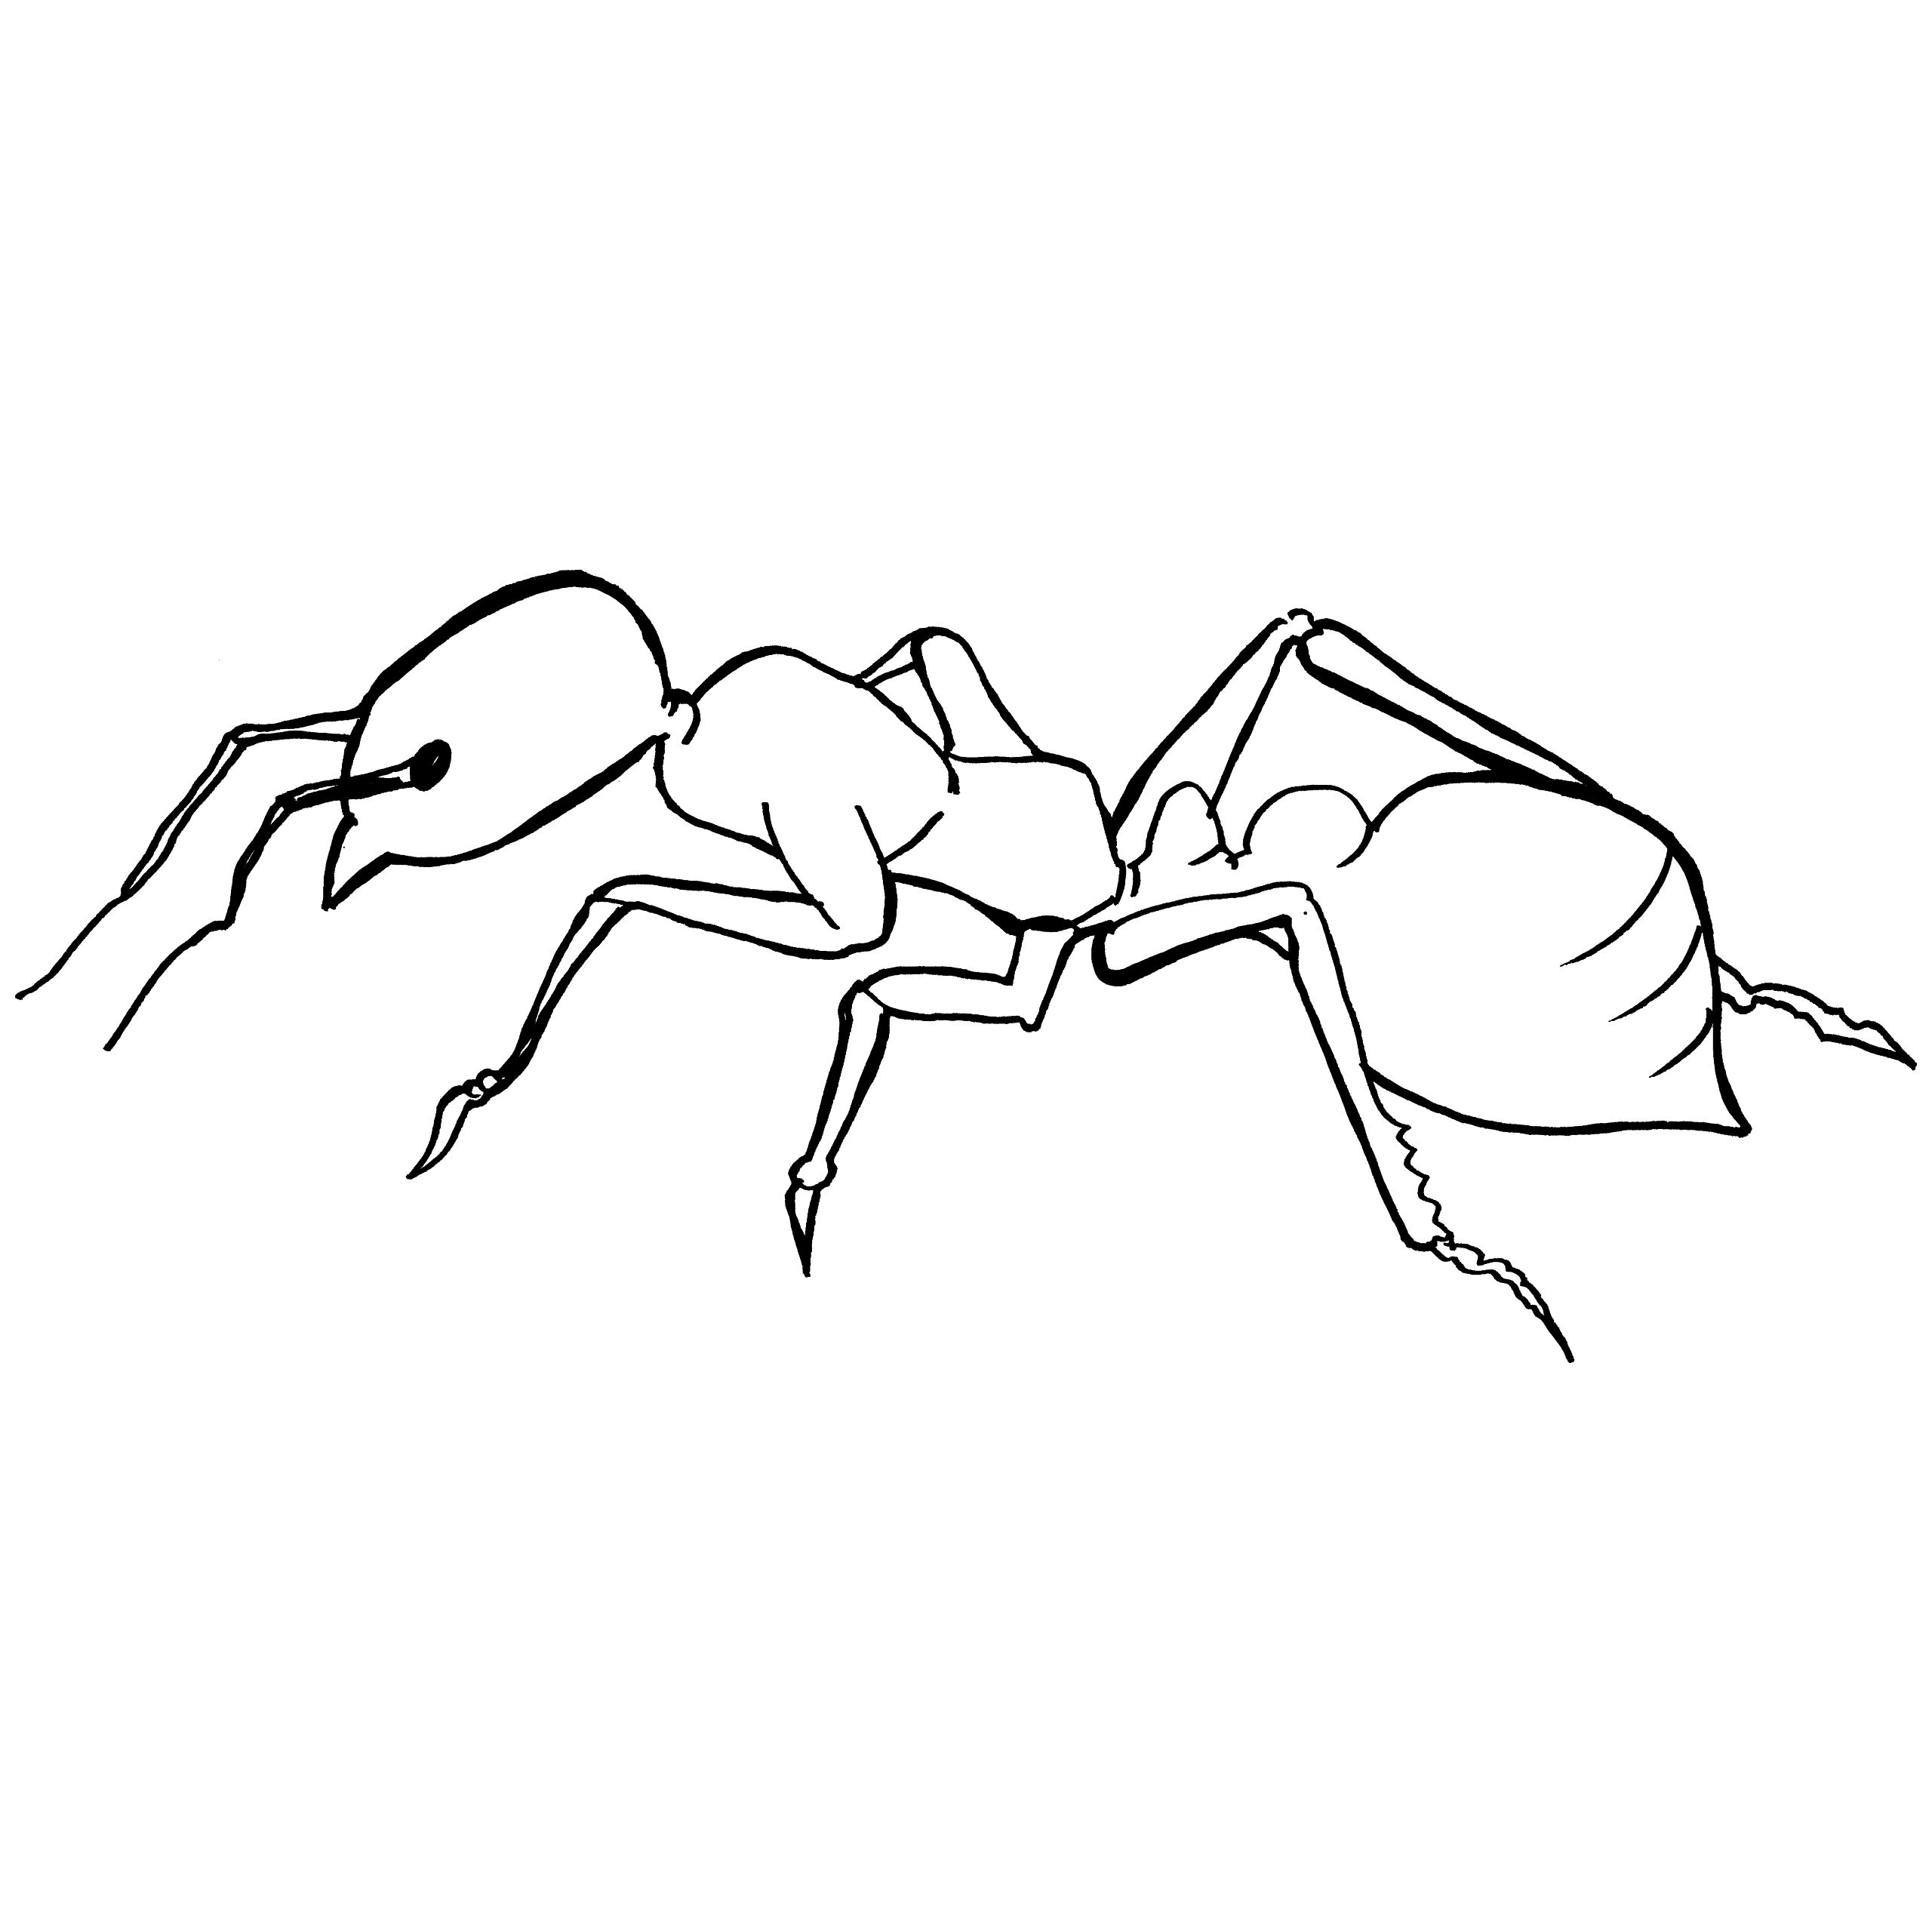 2560x2560 Printable Fire Ant Coloring Page For Toddlers